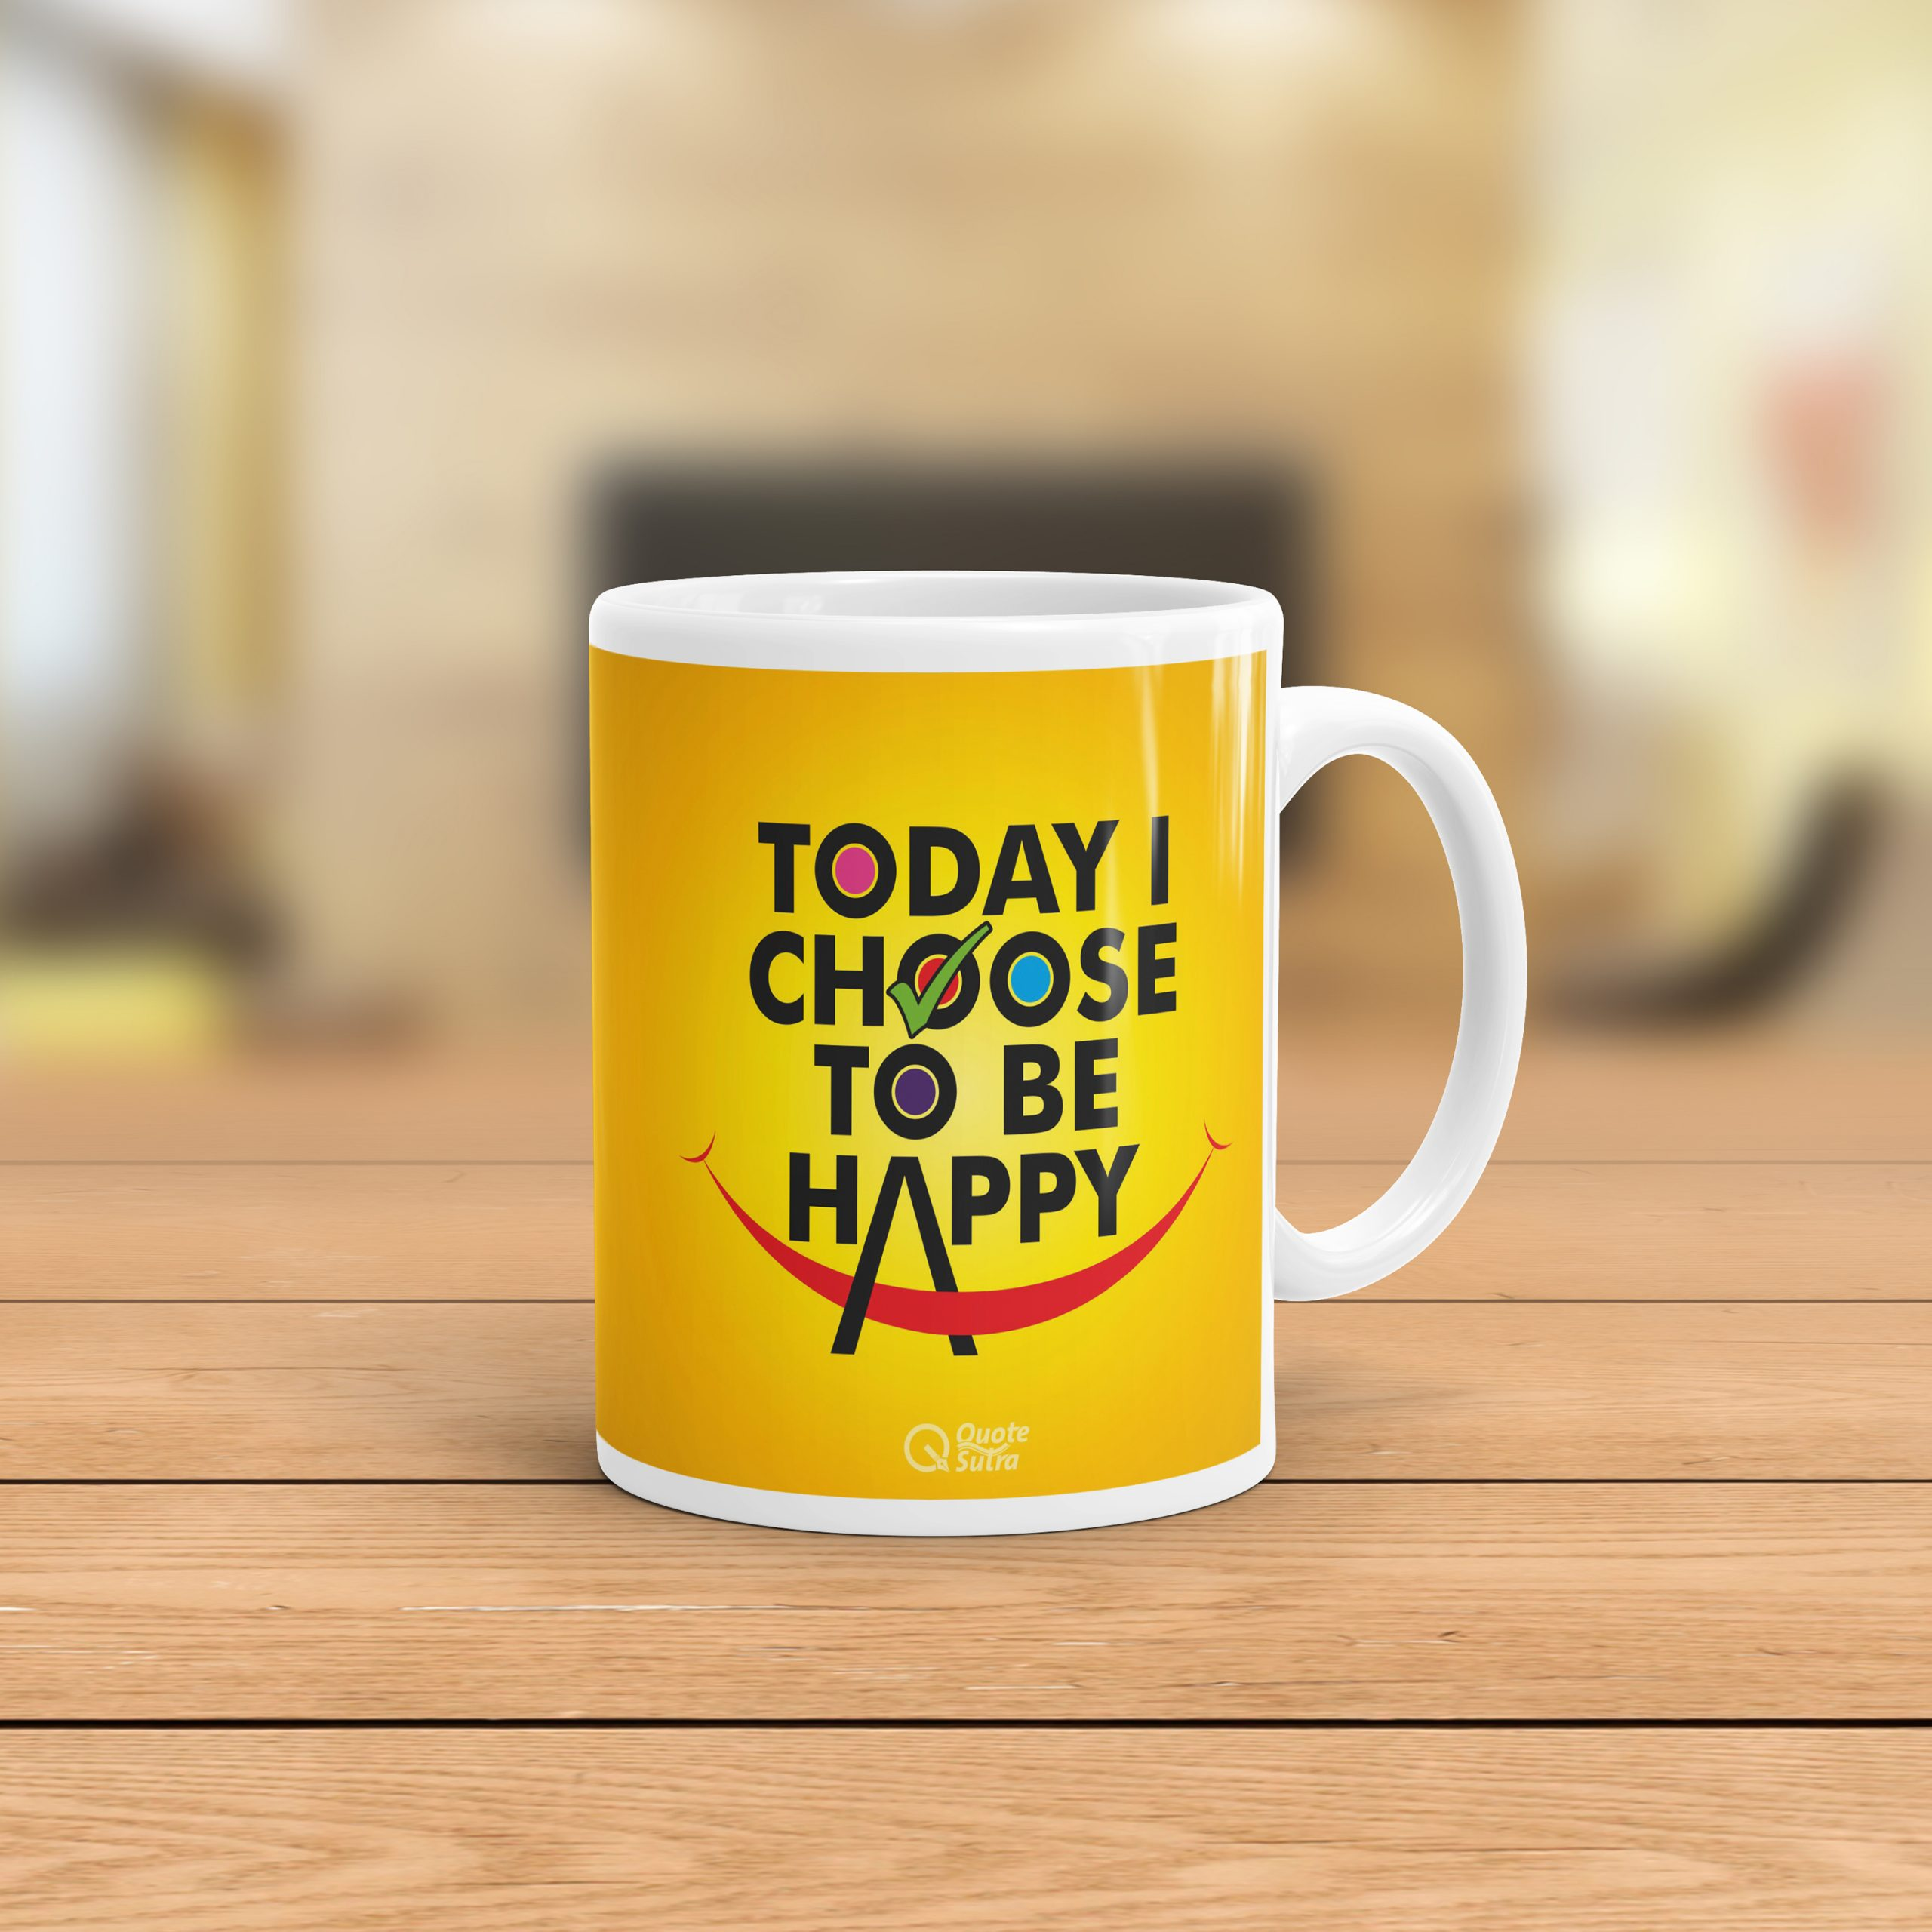 Today I Choose To Be Happy Inspiring Affirmation Mug by Quotesutra